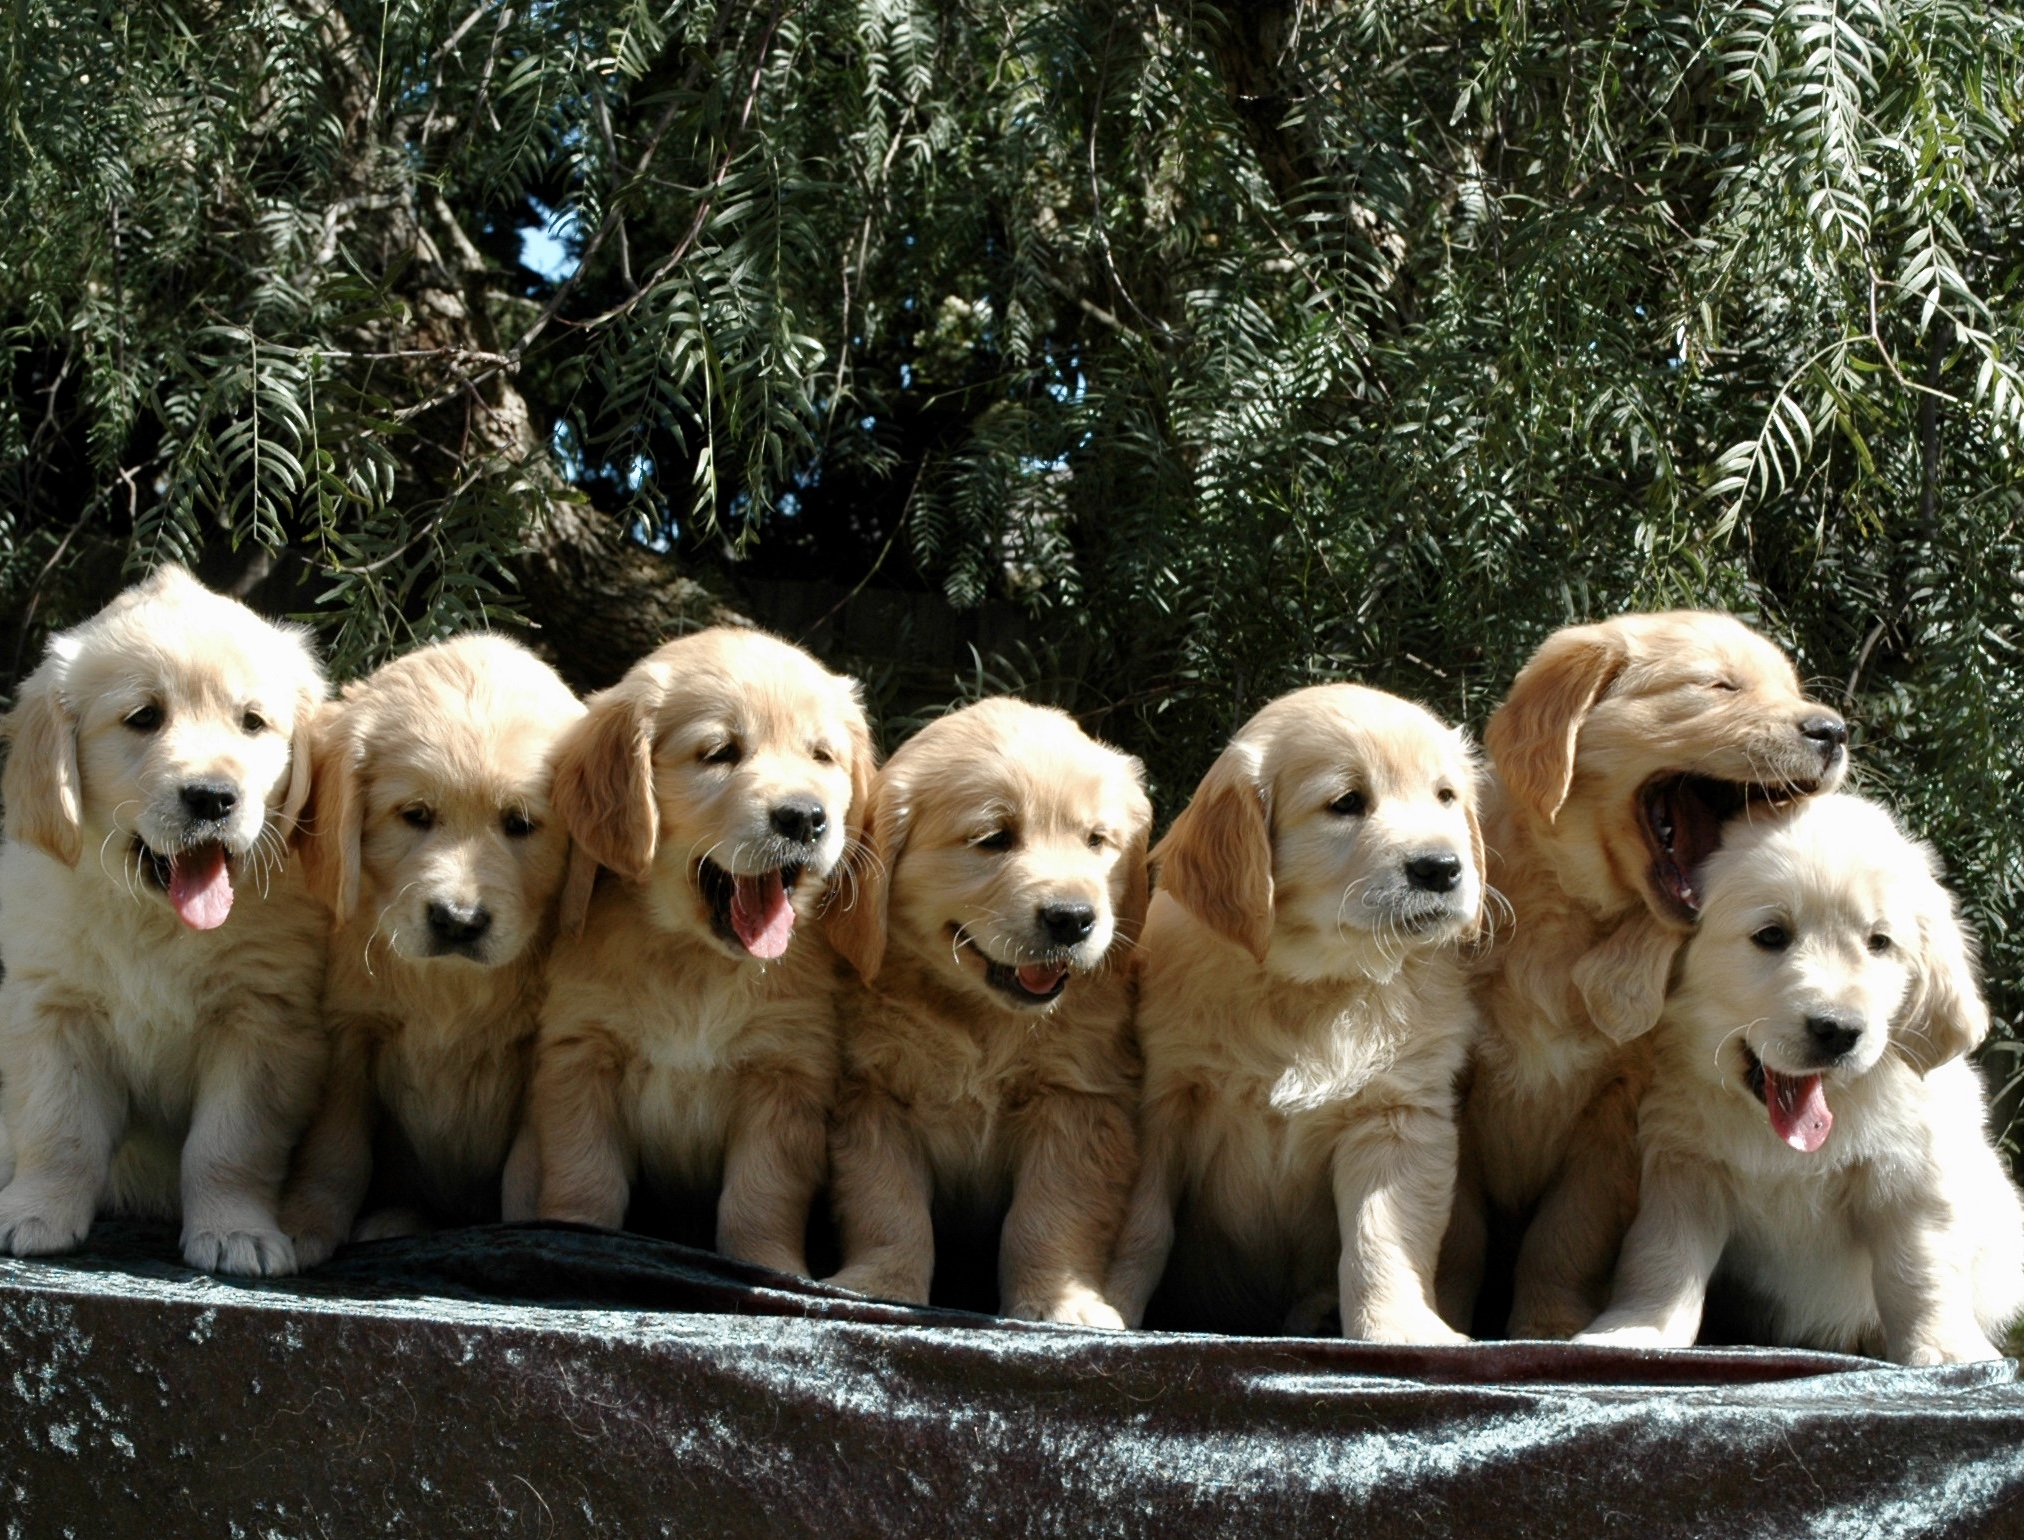 Choosing the Right Puppy from the Litter